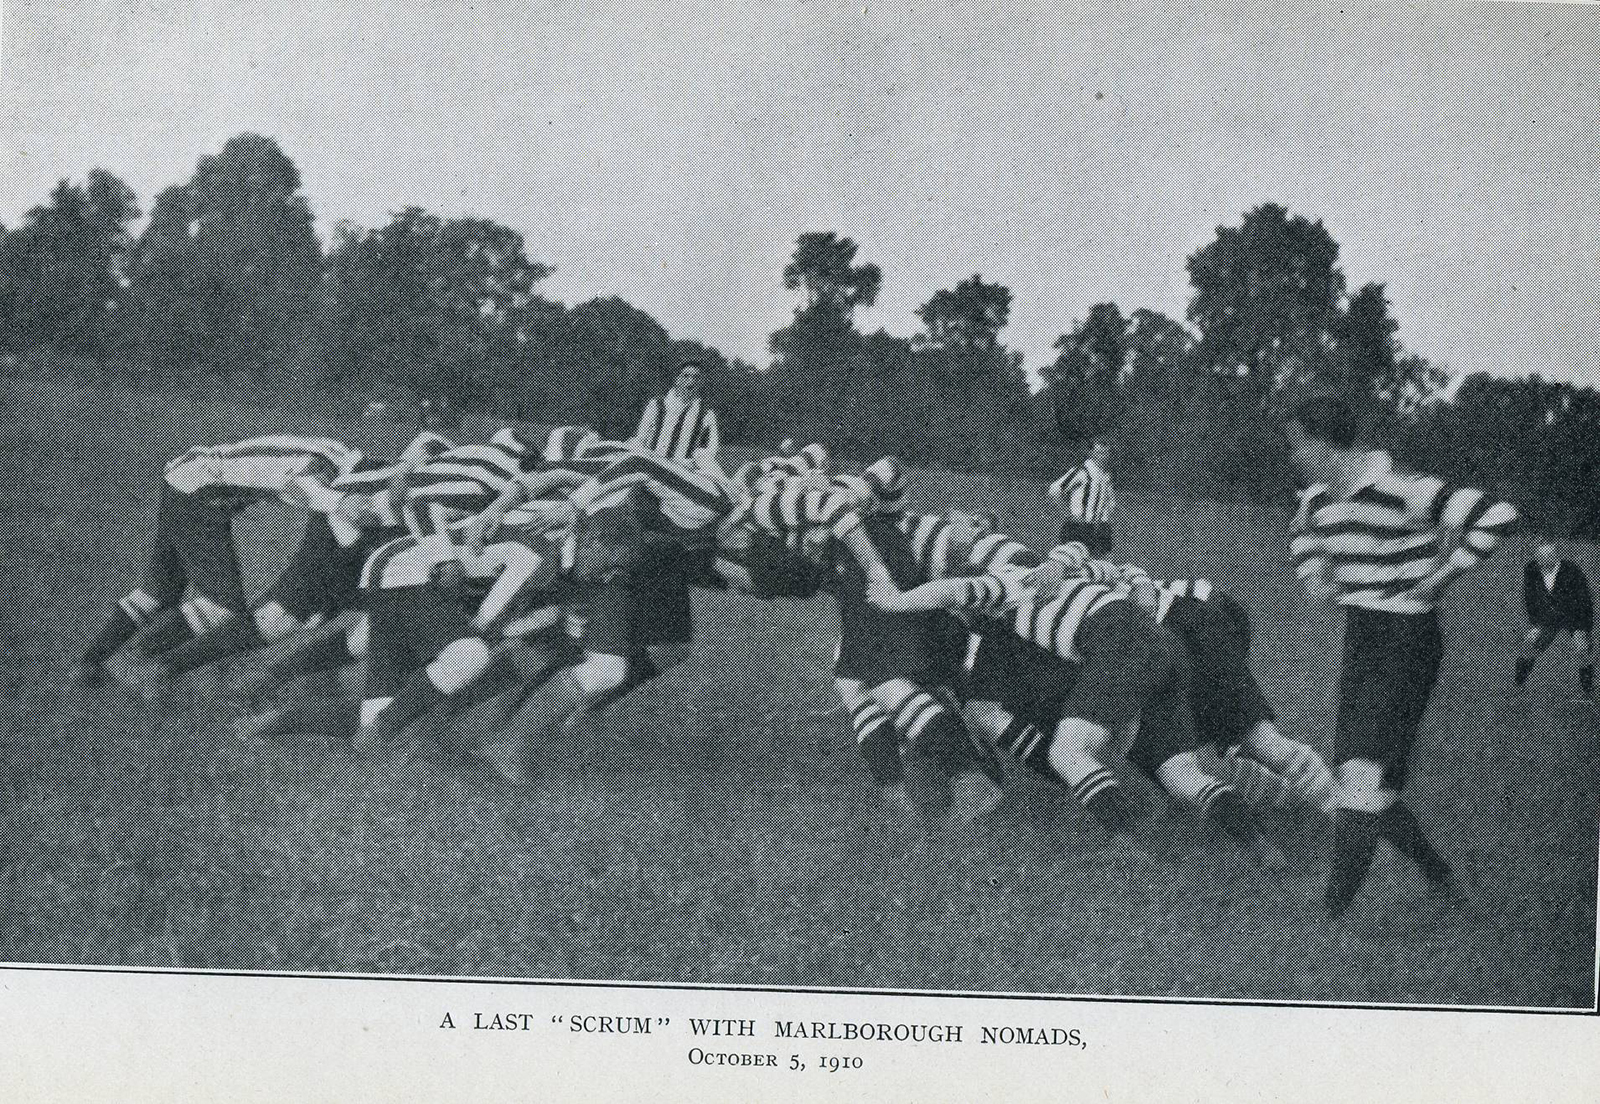 The last scrum between the two original Nomad teams before their merger more than a century ago